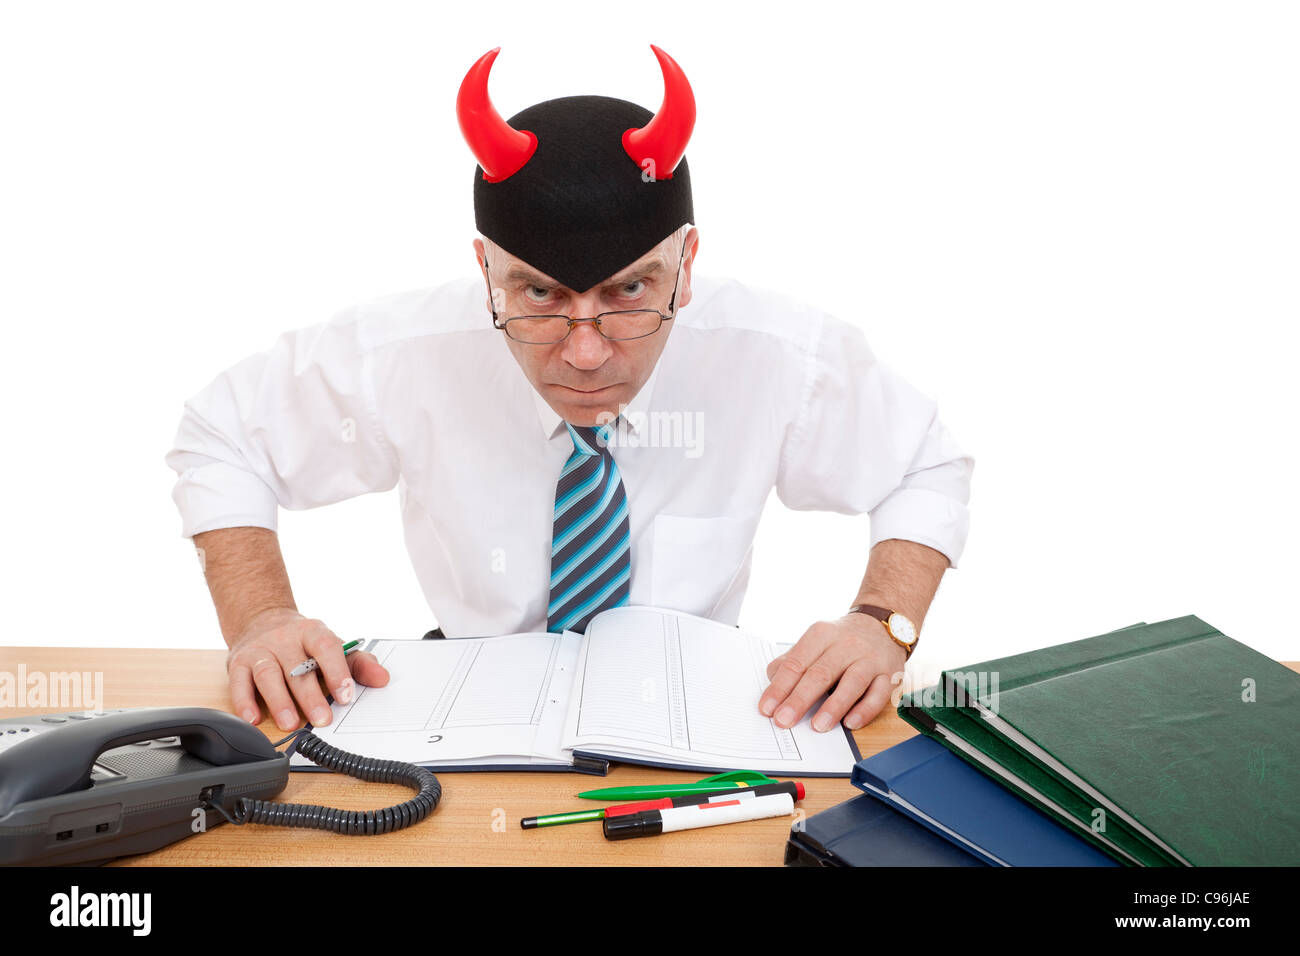 furious official near desk in office on white background - Stock Image